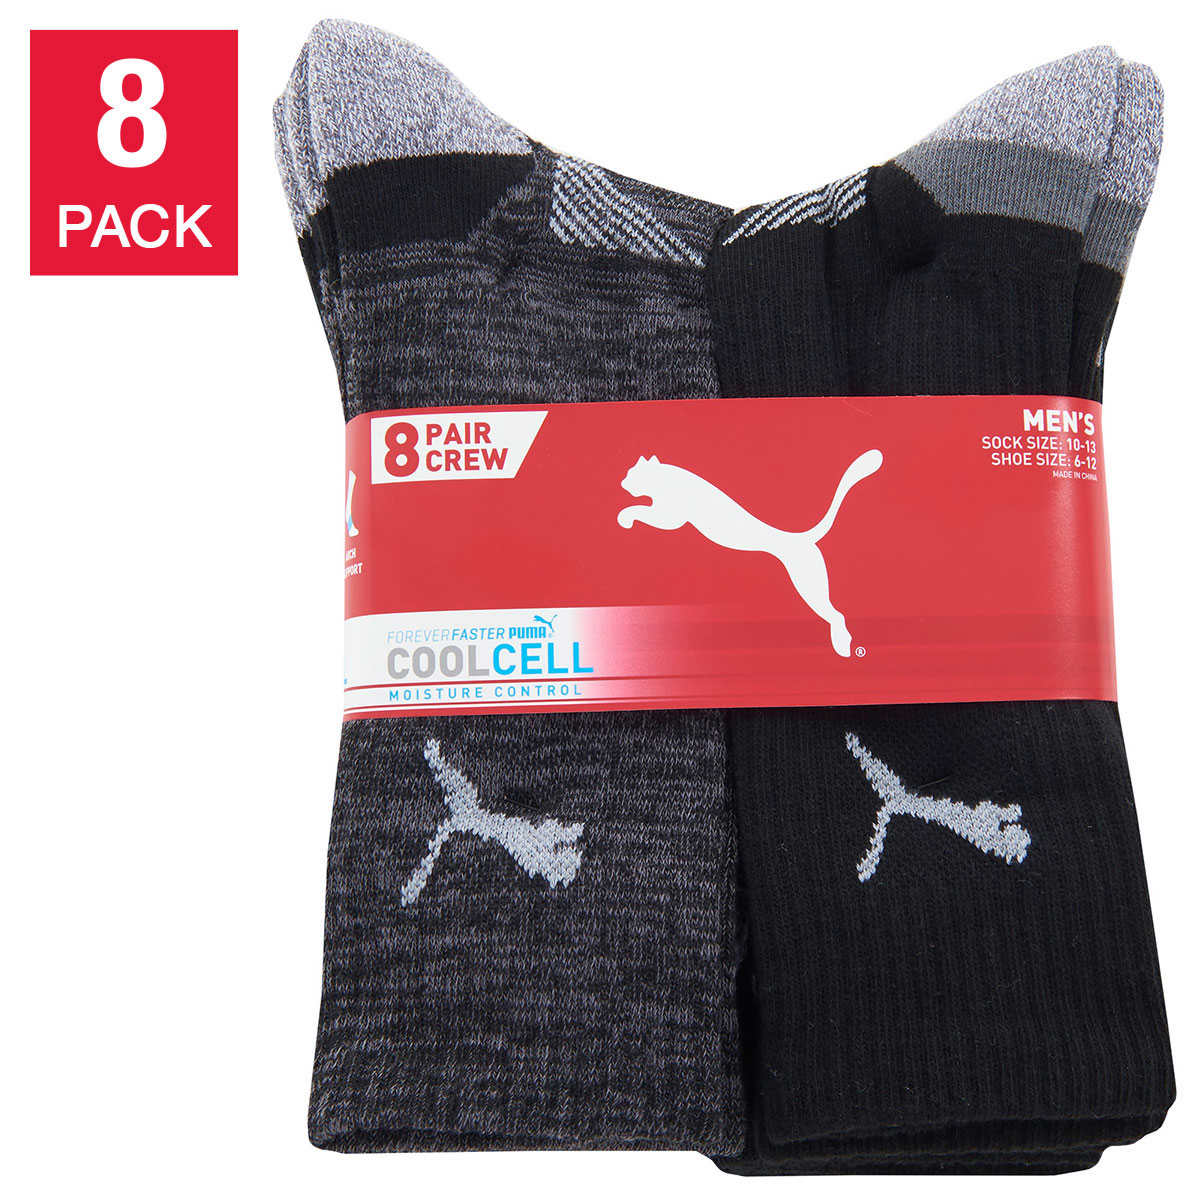 SUPPORTSPORT SWEET DO Sport Socks Men/'s and Woman/'s